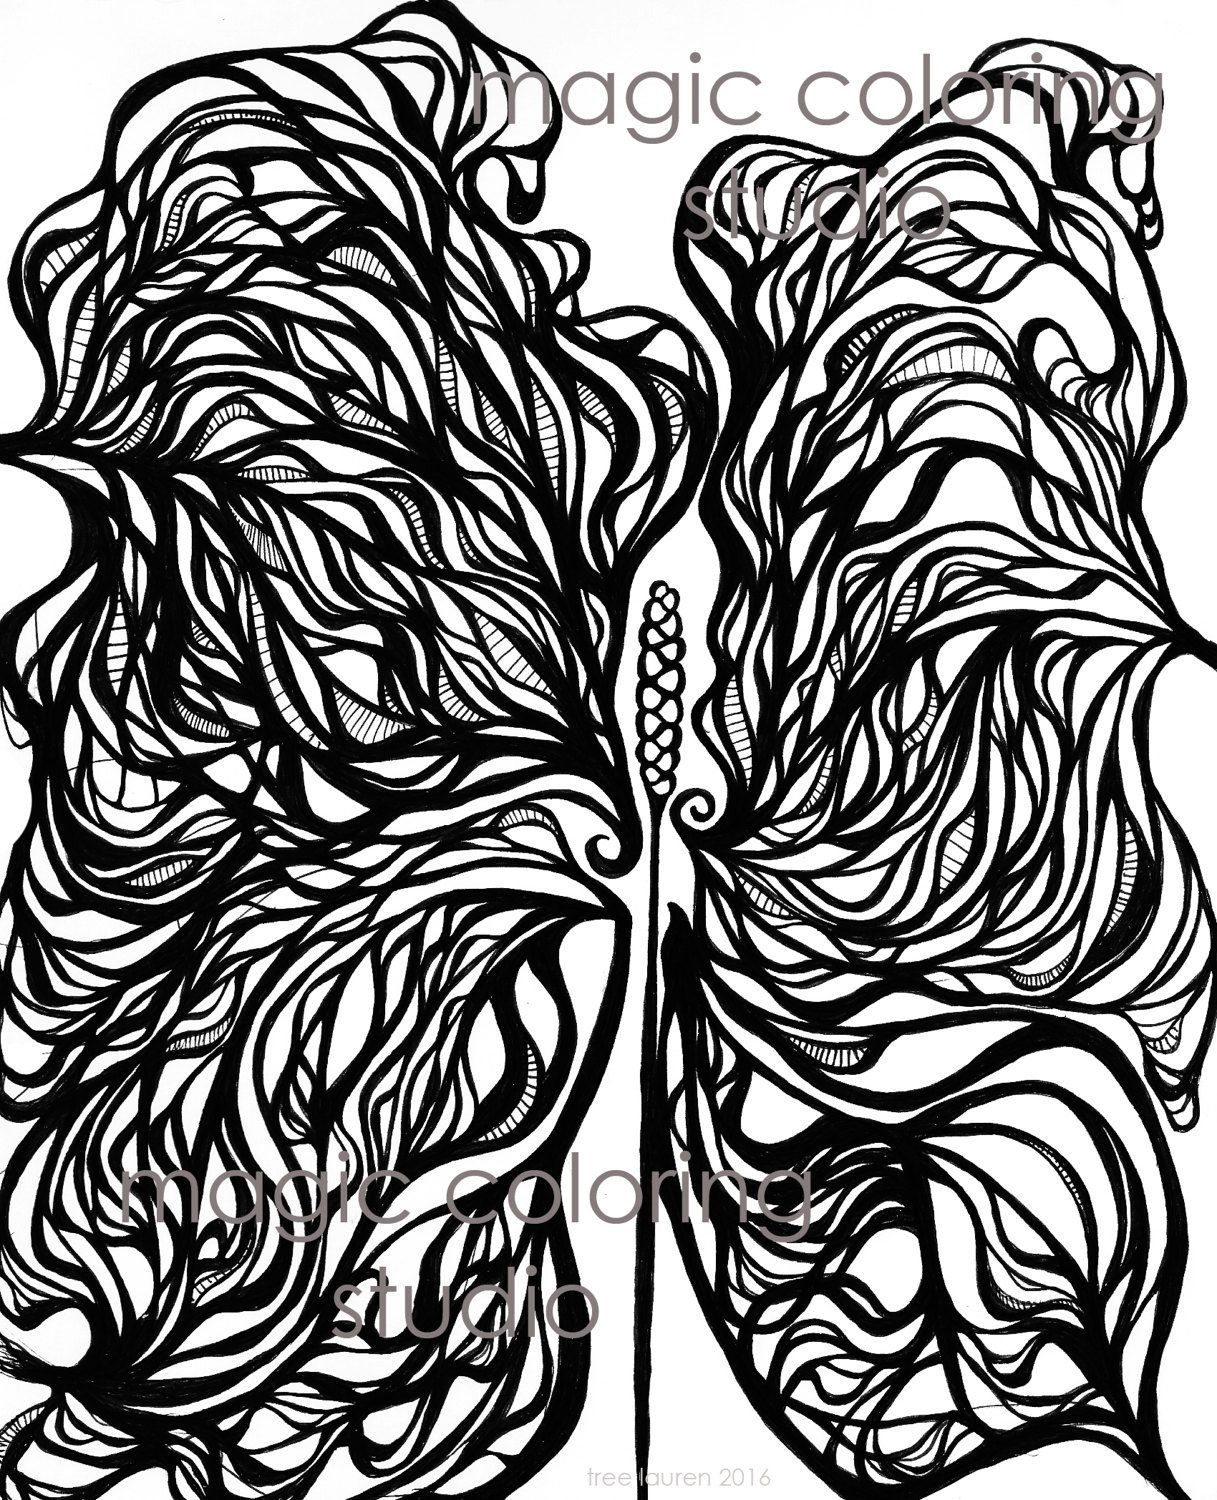 Magic maui ginger flower coloring page adult and children